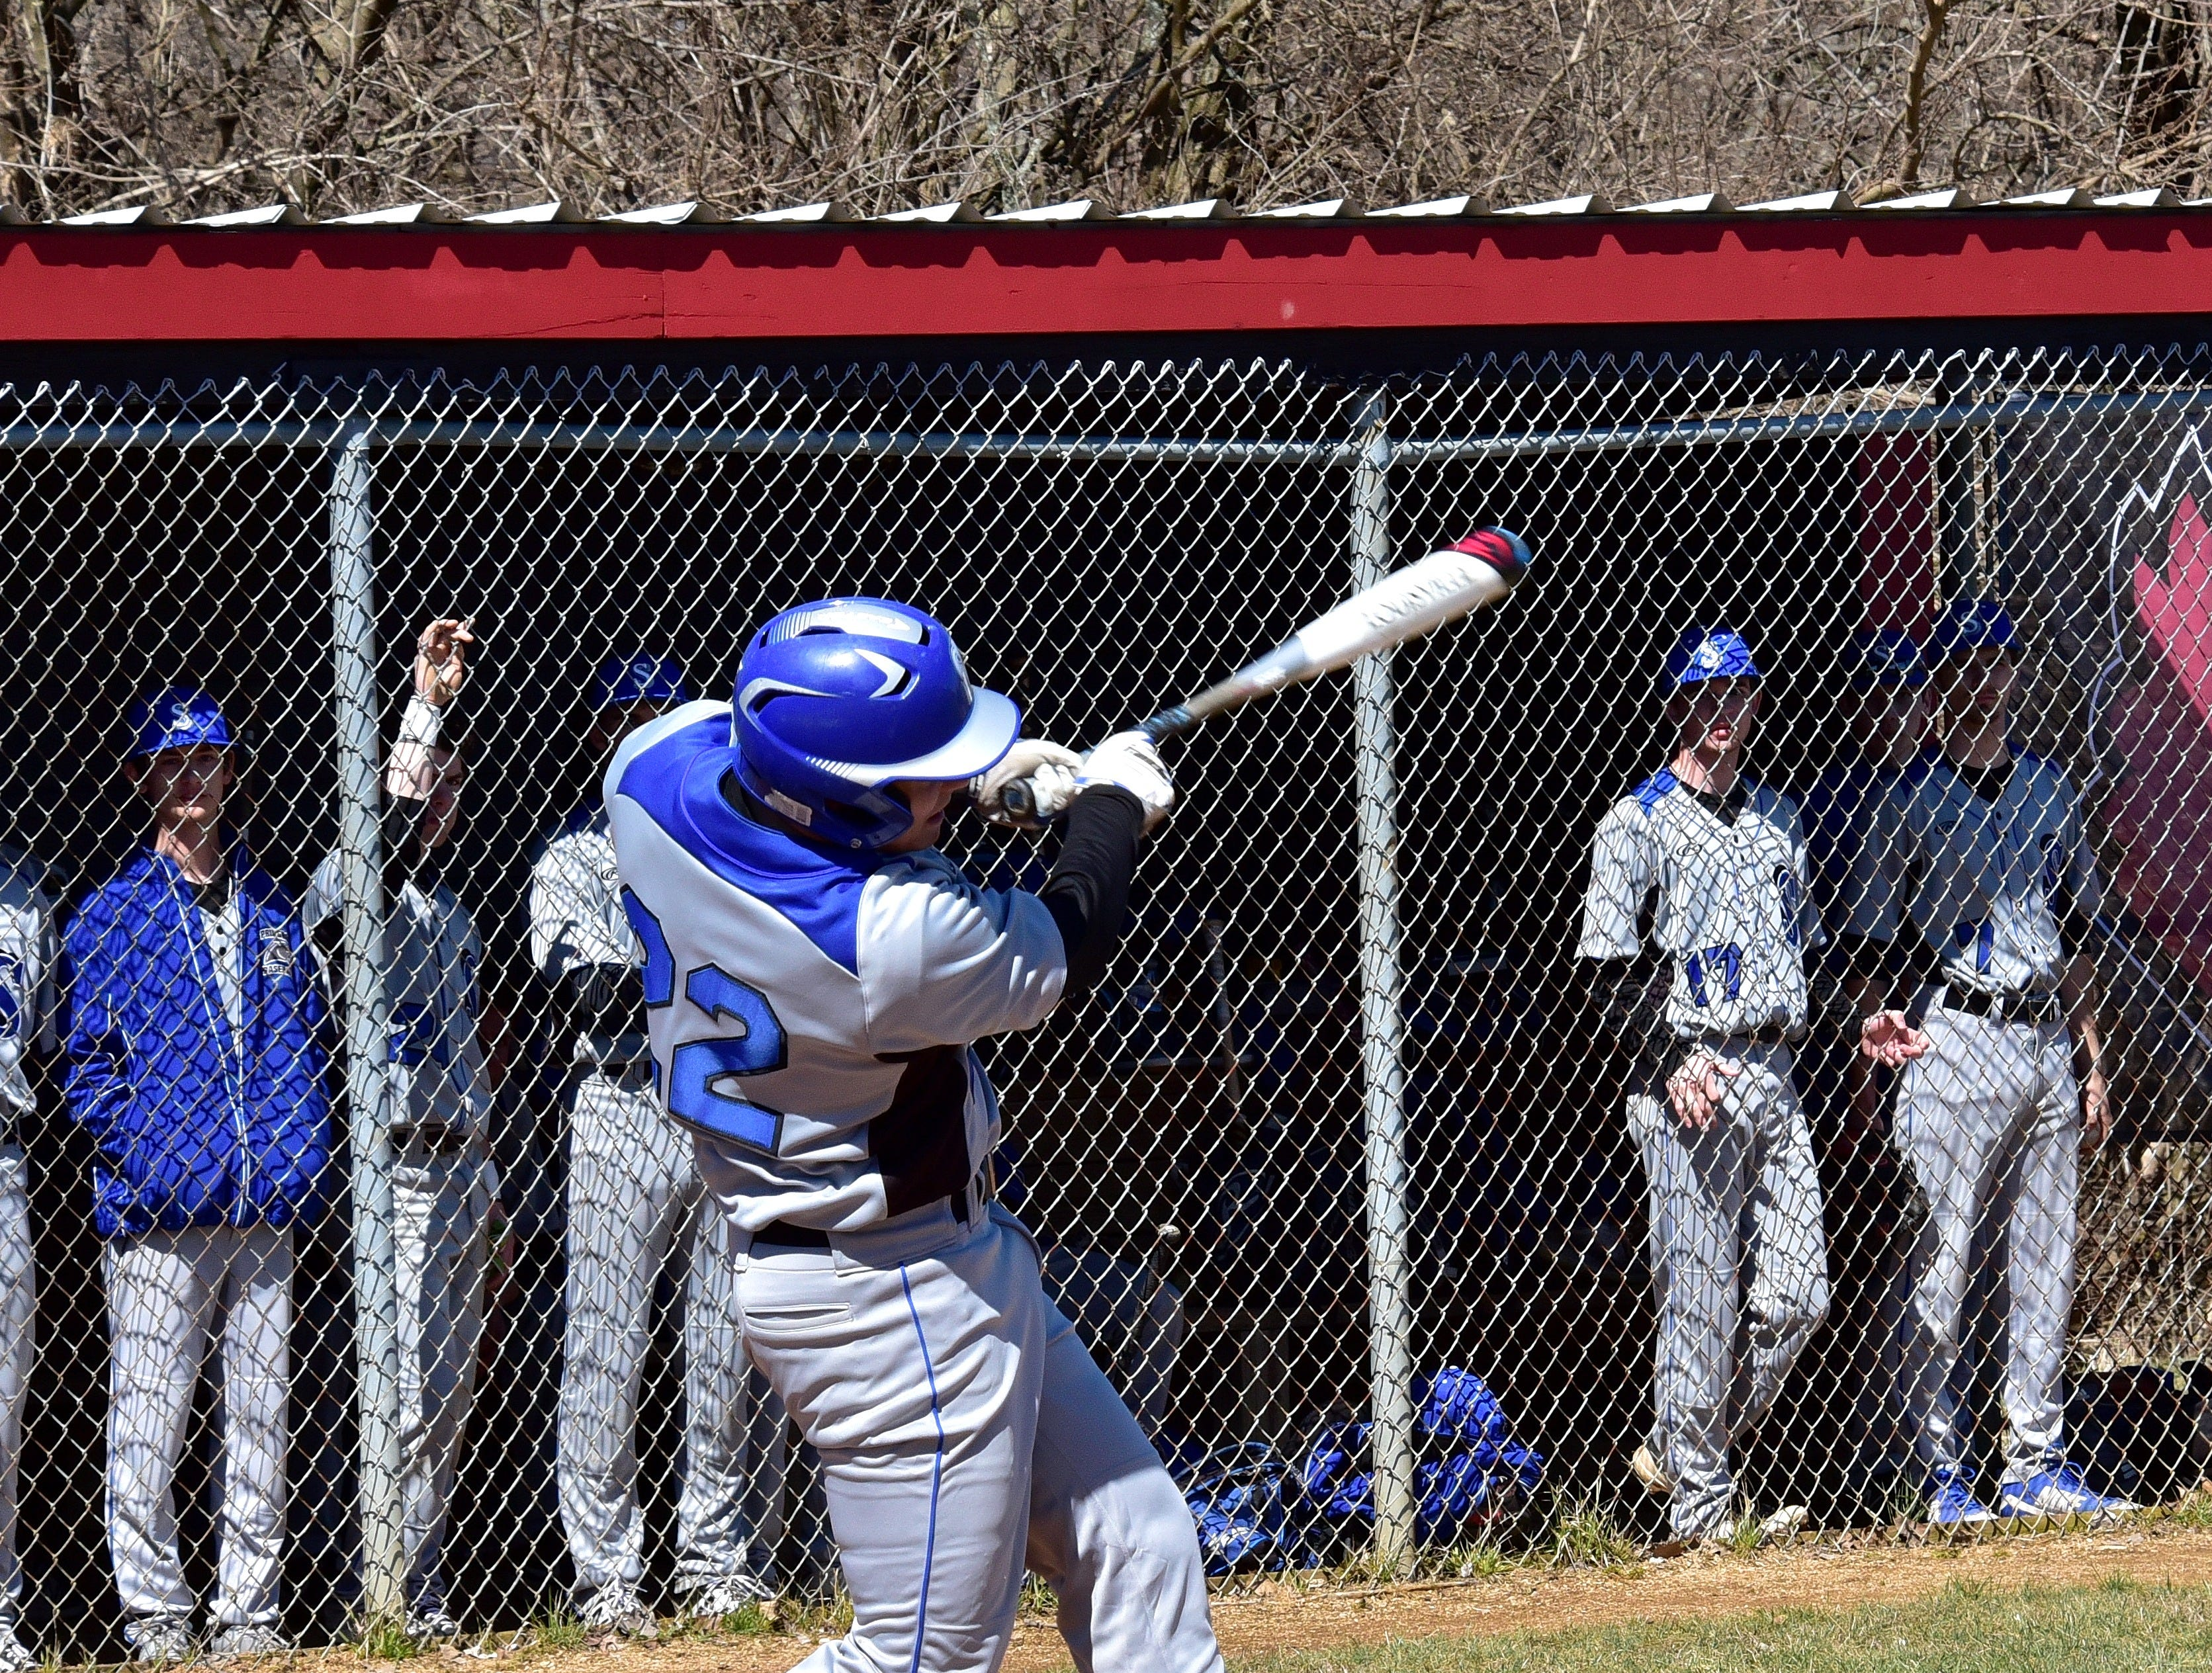 Springboro's Calvin Walters finishes off a homerun swing for the Panthers at Colerain High School, March 23, 2019.